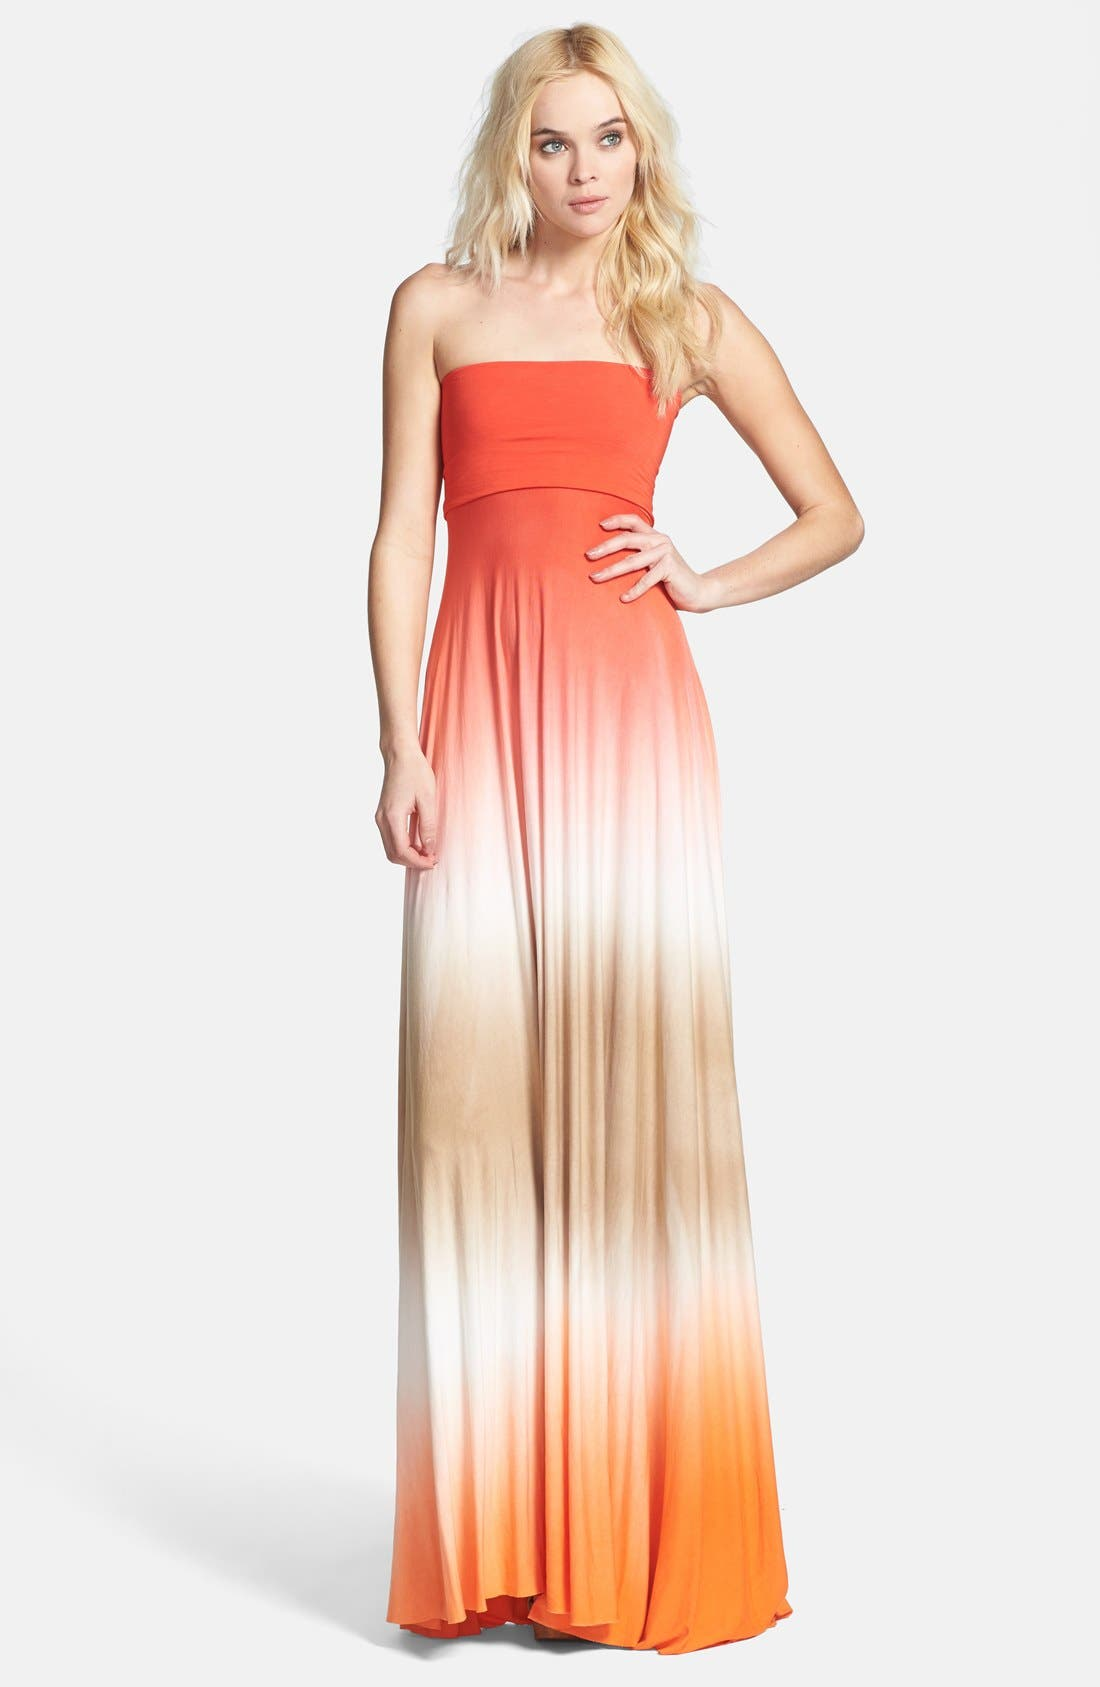 Main Image - Young, Fabulous & Broke 'Bangal' Convertible Maxi Dress